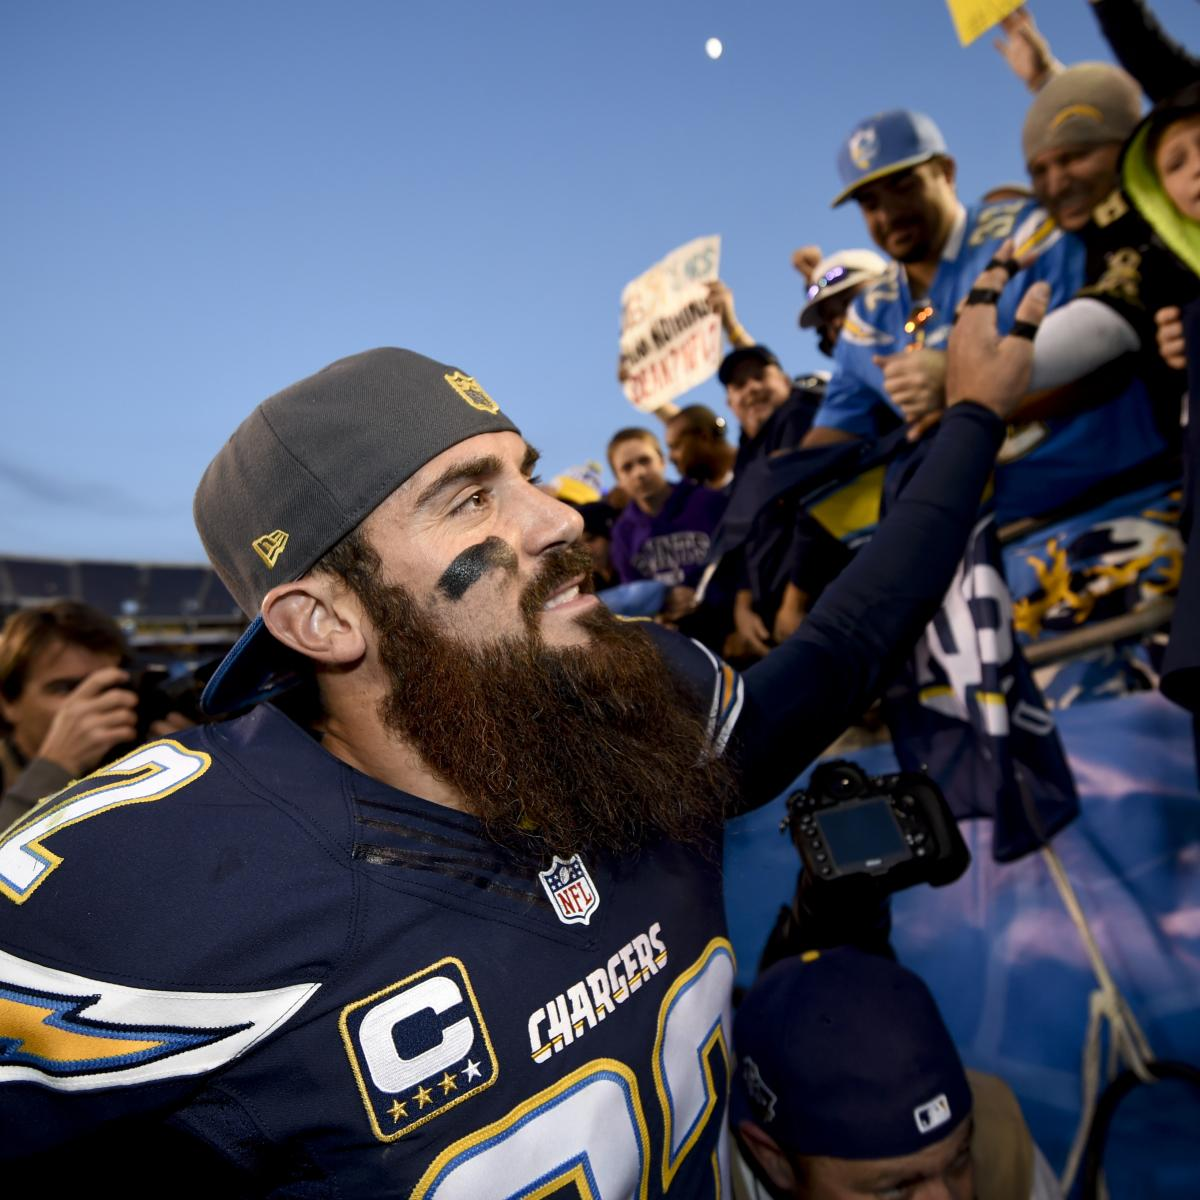 San Diego Chargers Cbs: Eric Weddle Reportedly Agrees To Sign With Baltimore